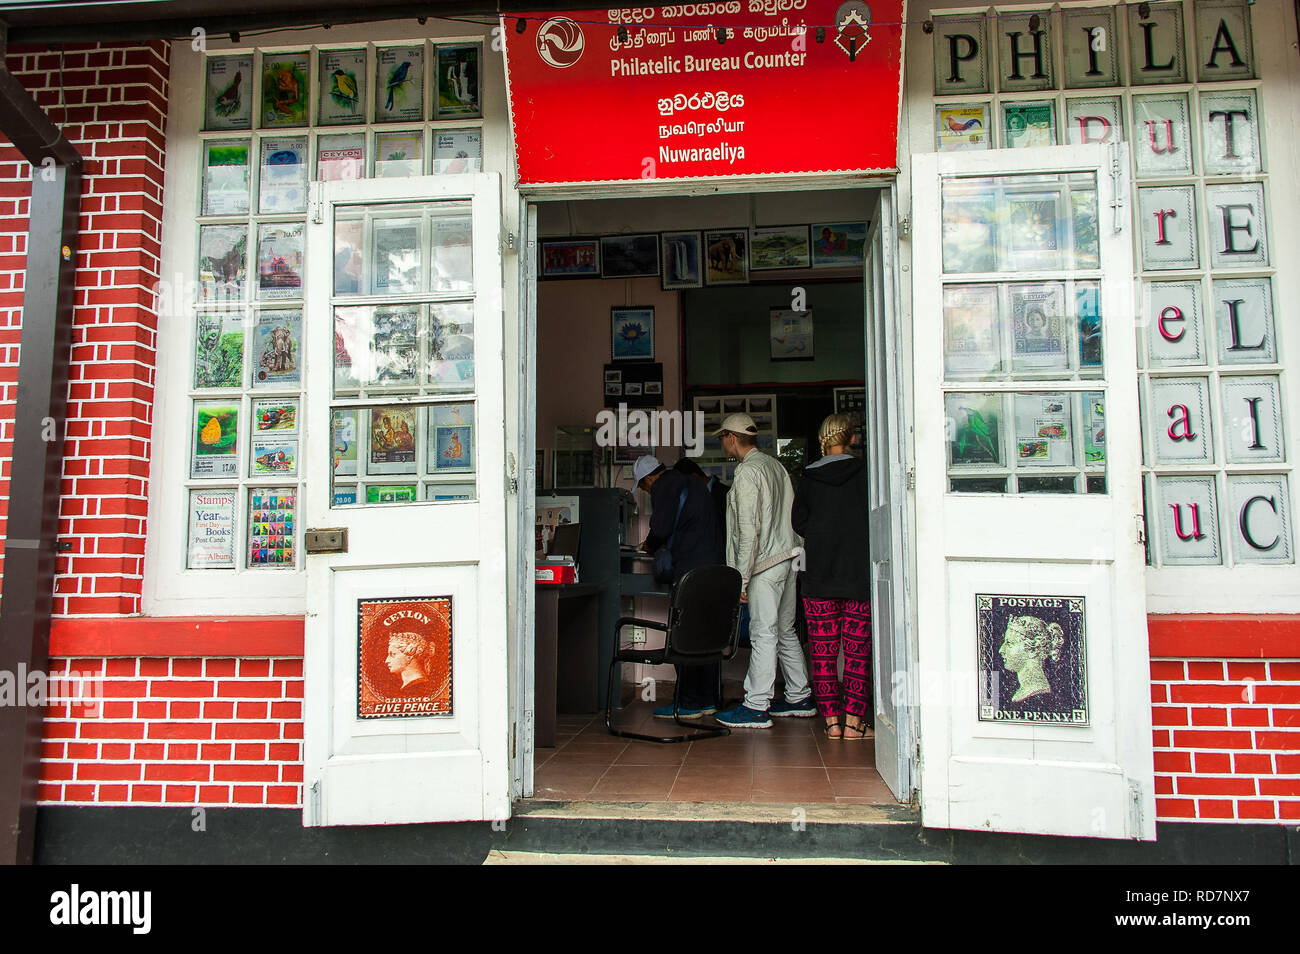 Nuwara Eliya, Sri Lanka: View to Phalatelic Centre inside the historic Post Office building with people  waiting in a queue. - Stock Image